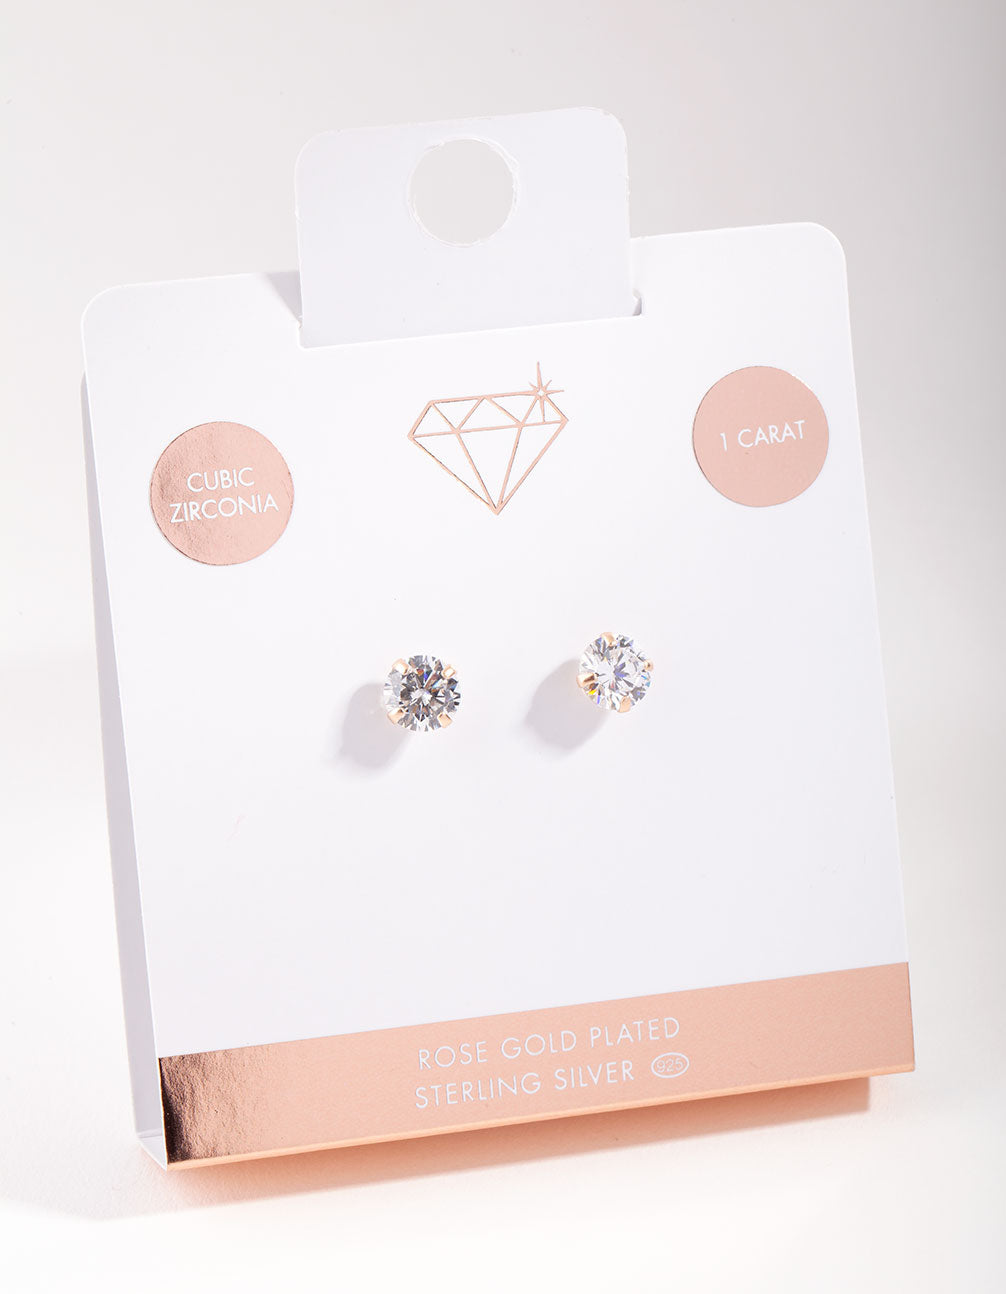 Rose Gold Plated Sterling Silver 7mm Cubic Zirconia Stud Earrings